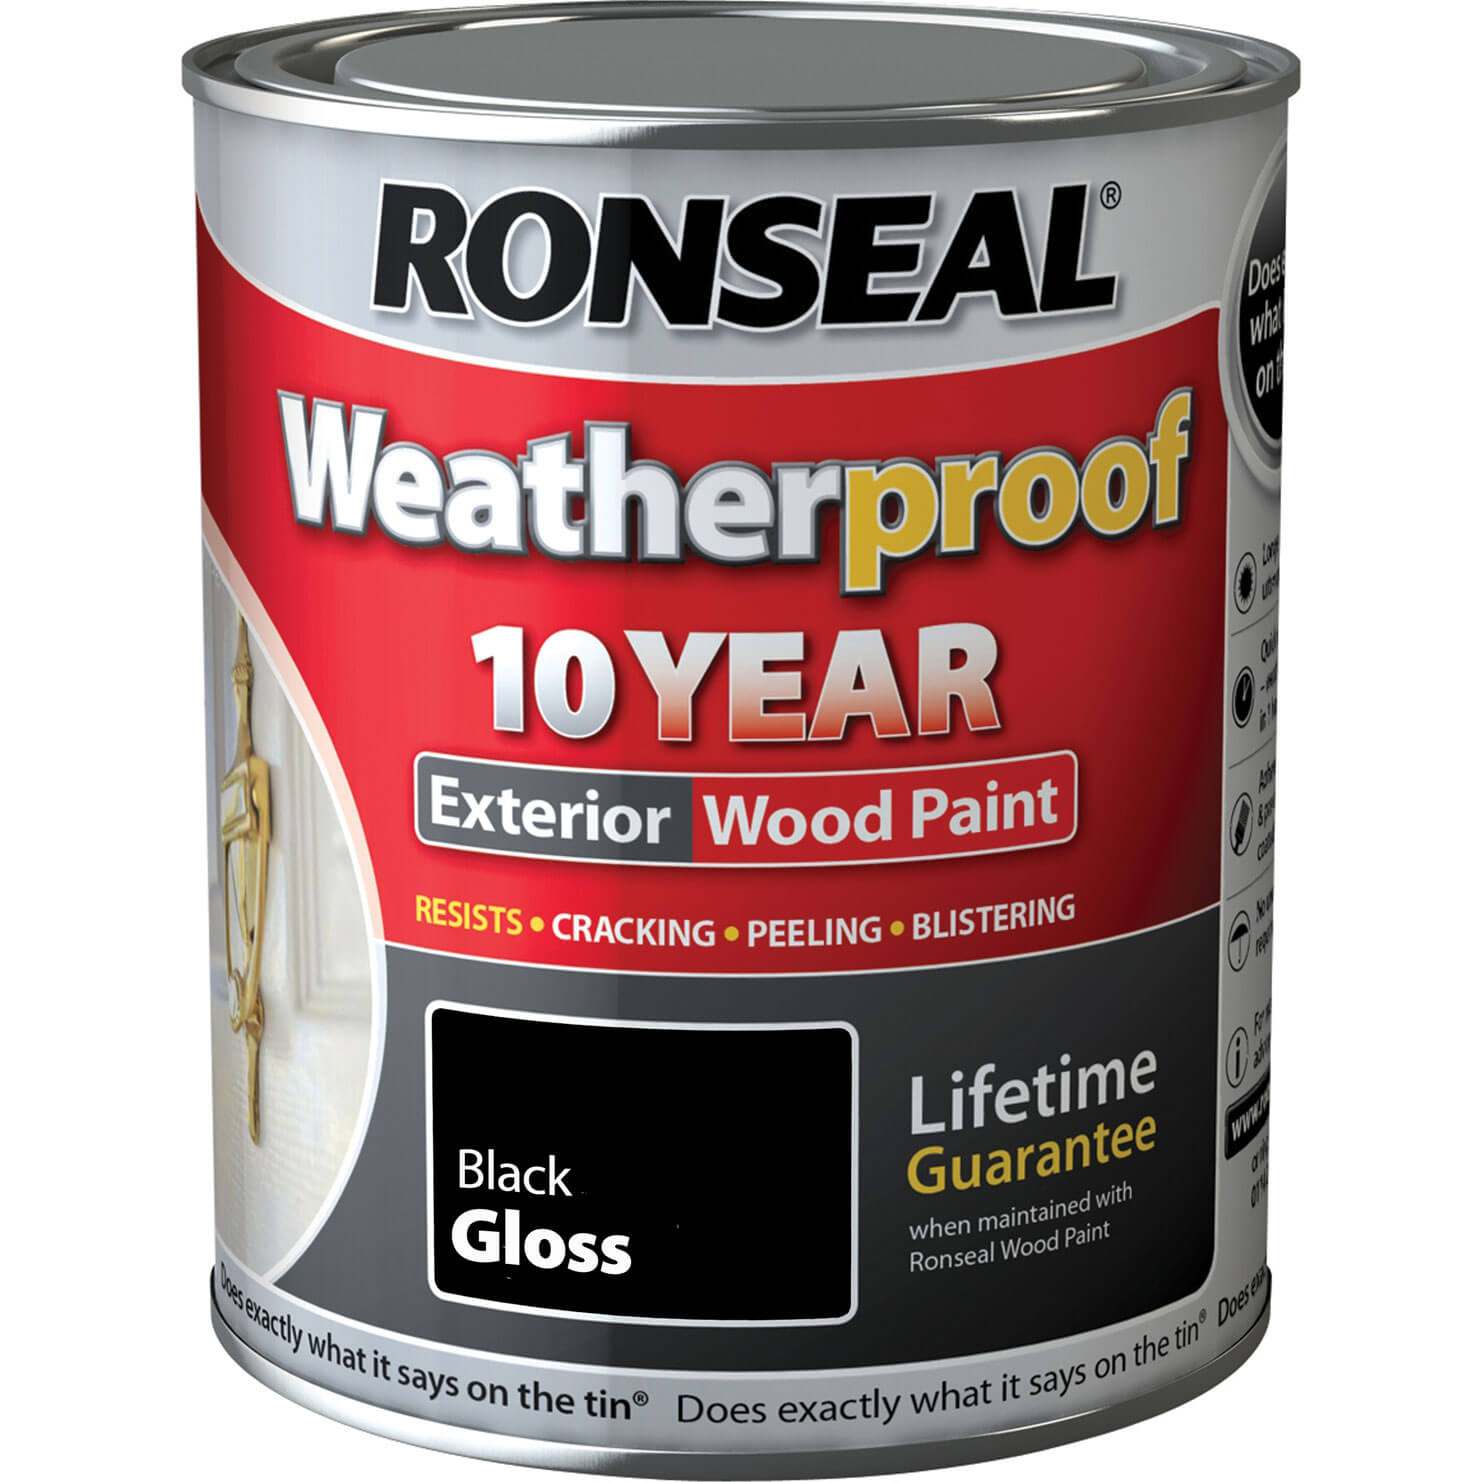 Ronseal Weatherproof 10 Year Exterior Wood Paint Black Gloss 25 Litre